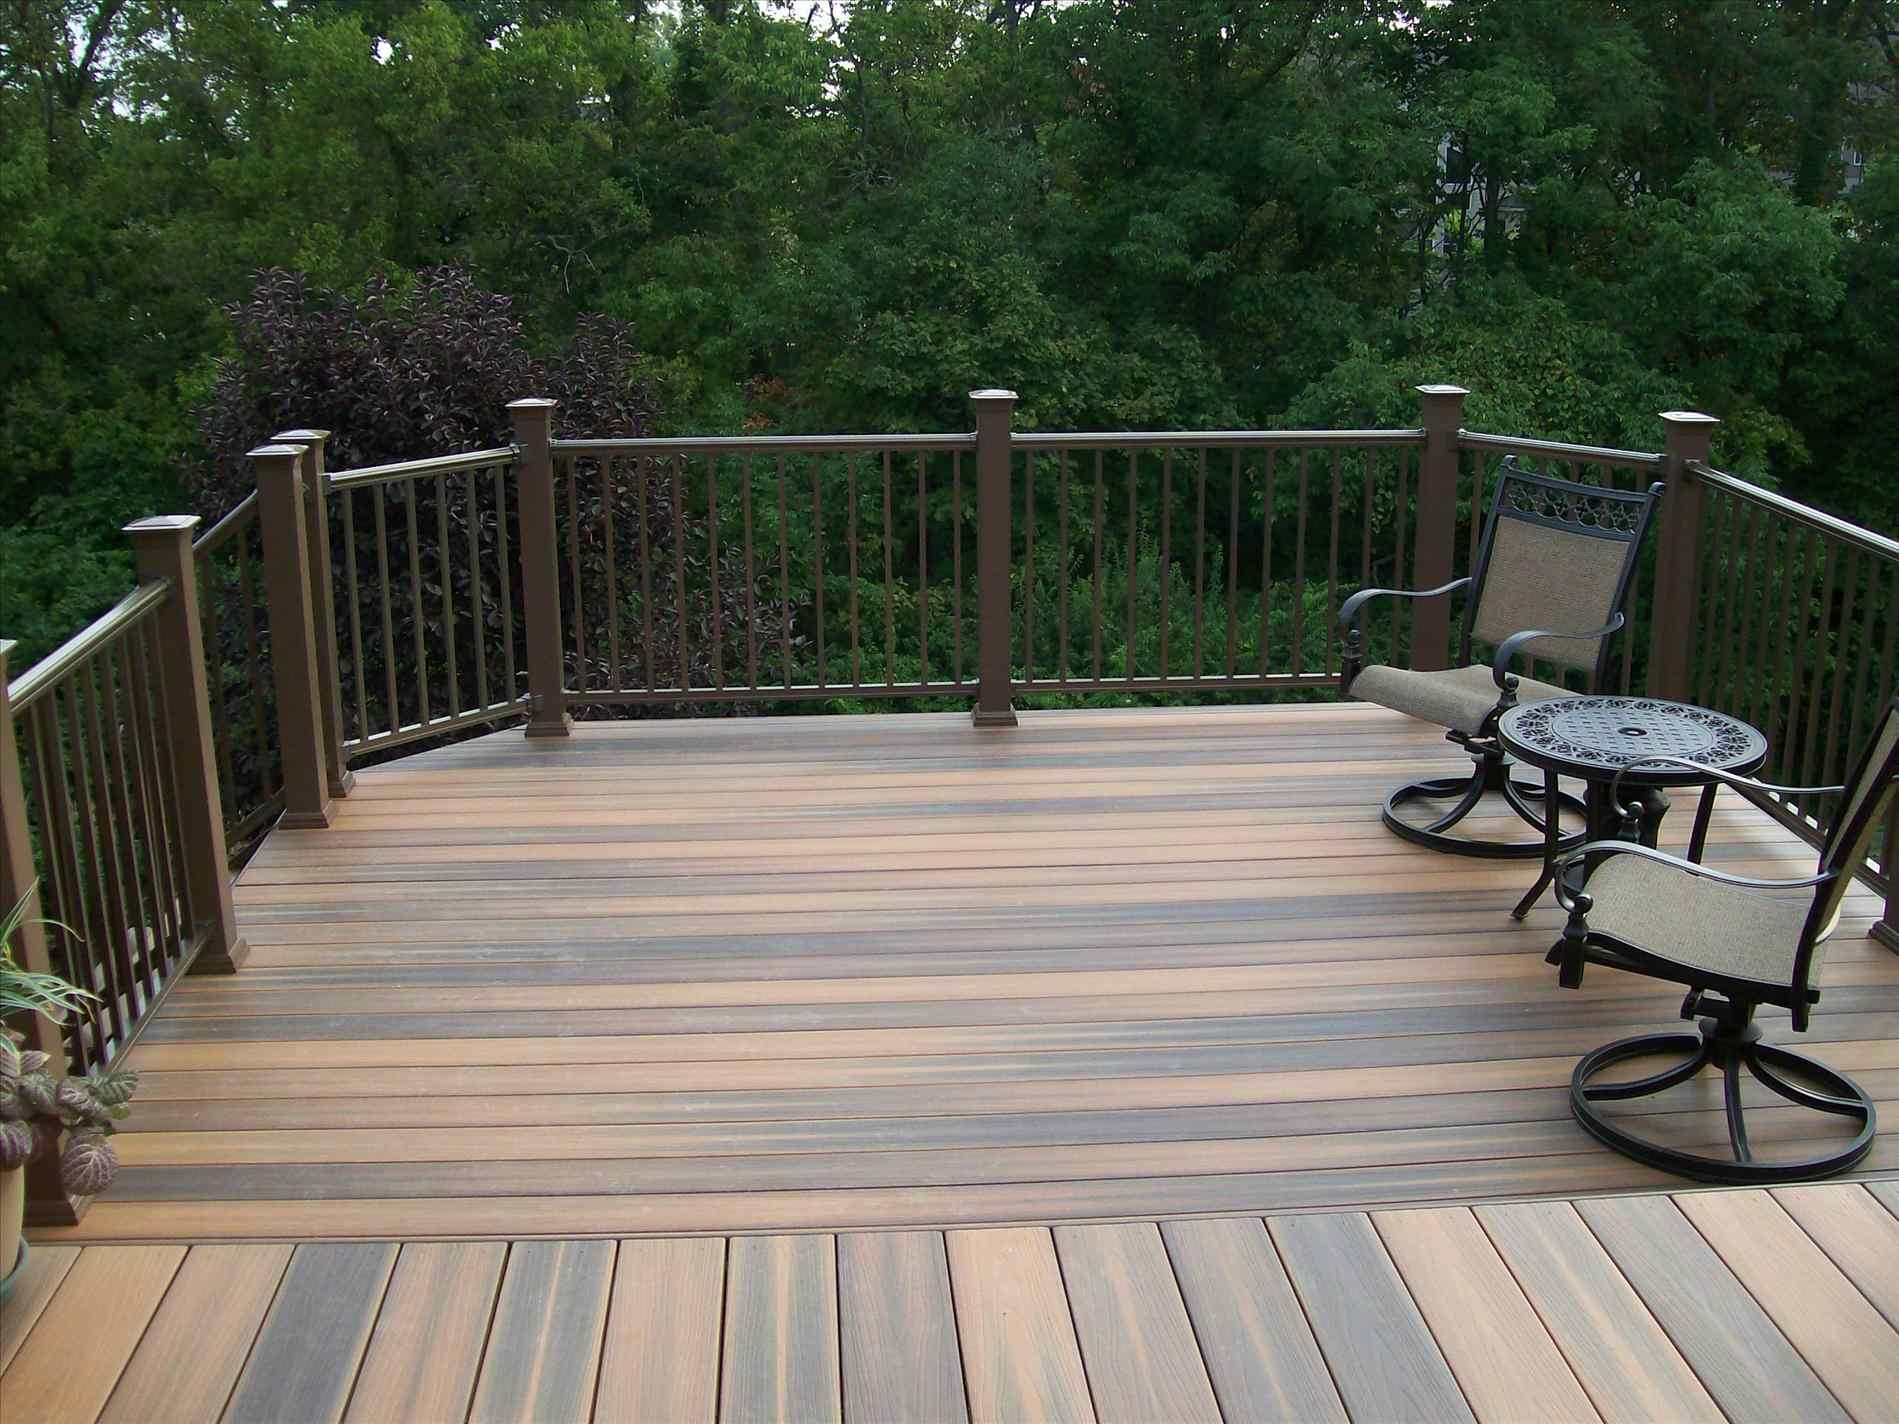 Veranda Composite Decking | Veranda Composite Railing | Home Depot Deck Railing Kit